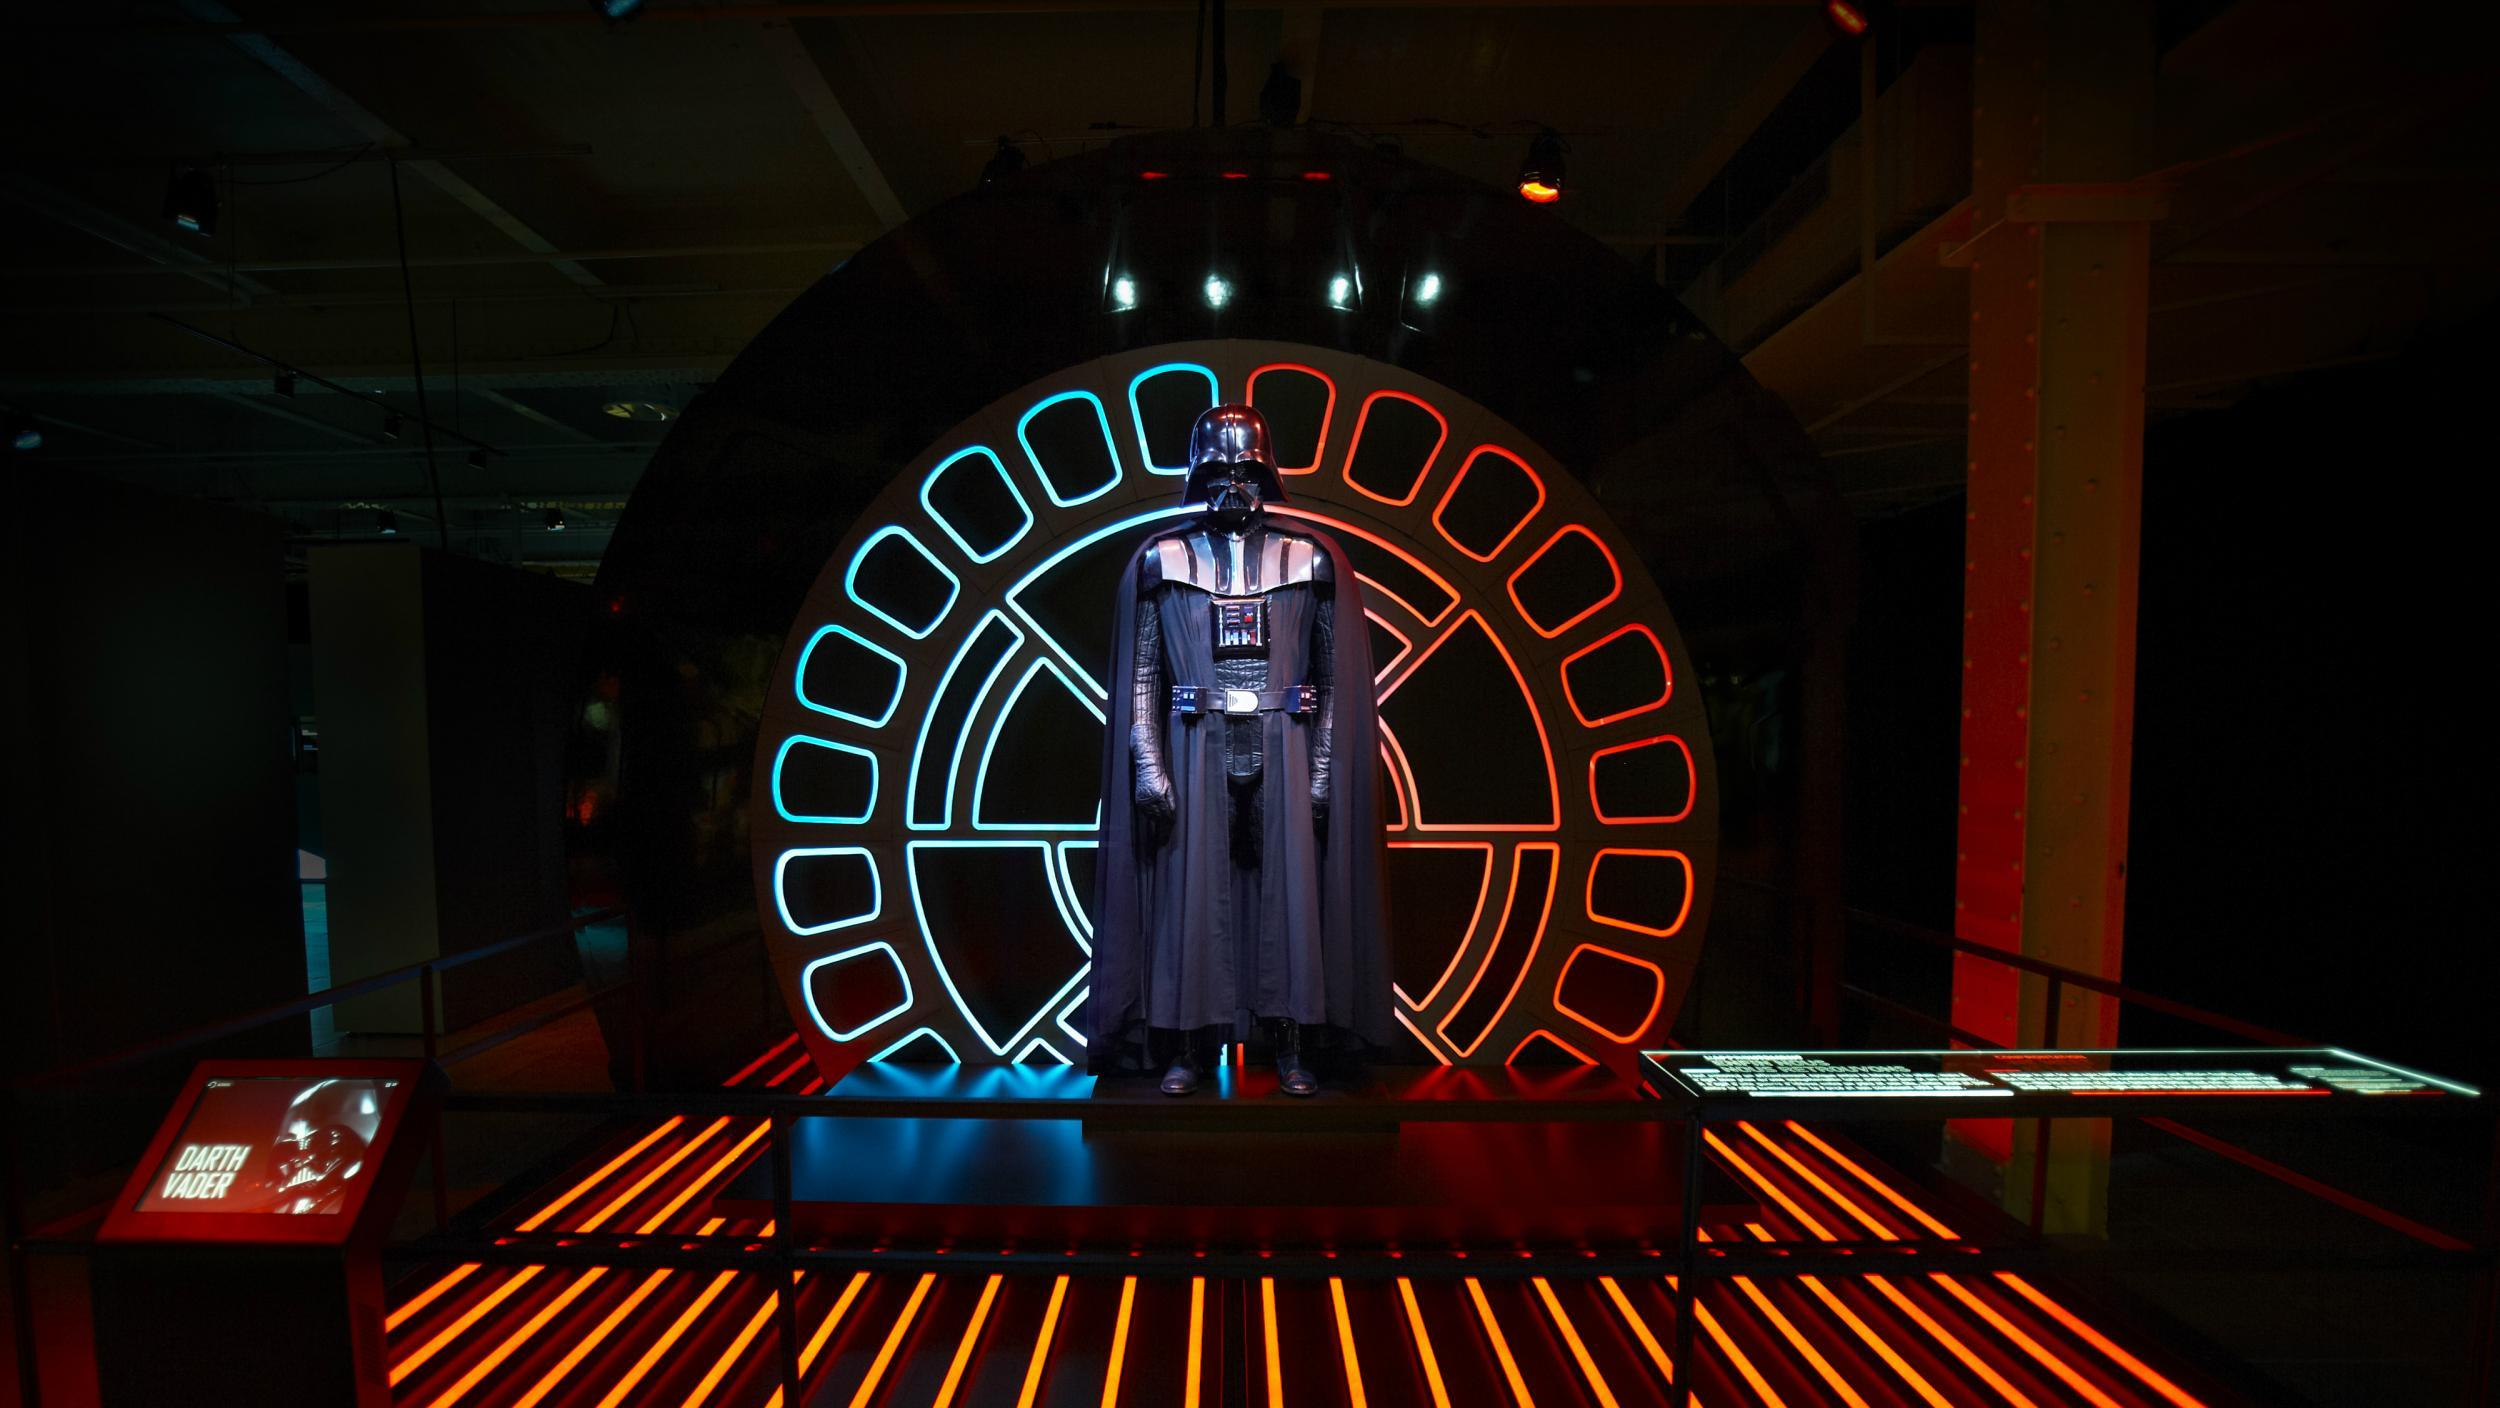 Star Wars Identities: We created our own Star Wars character at the O2's new interactive exhibition